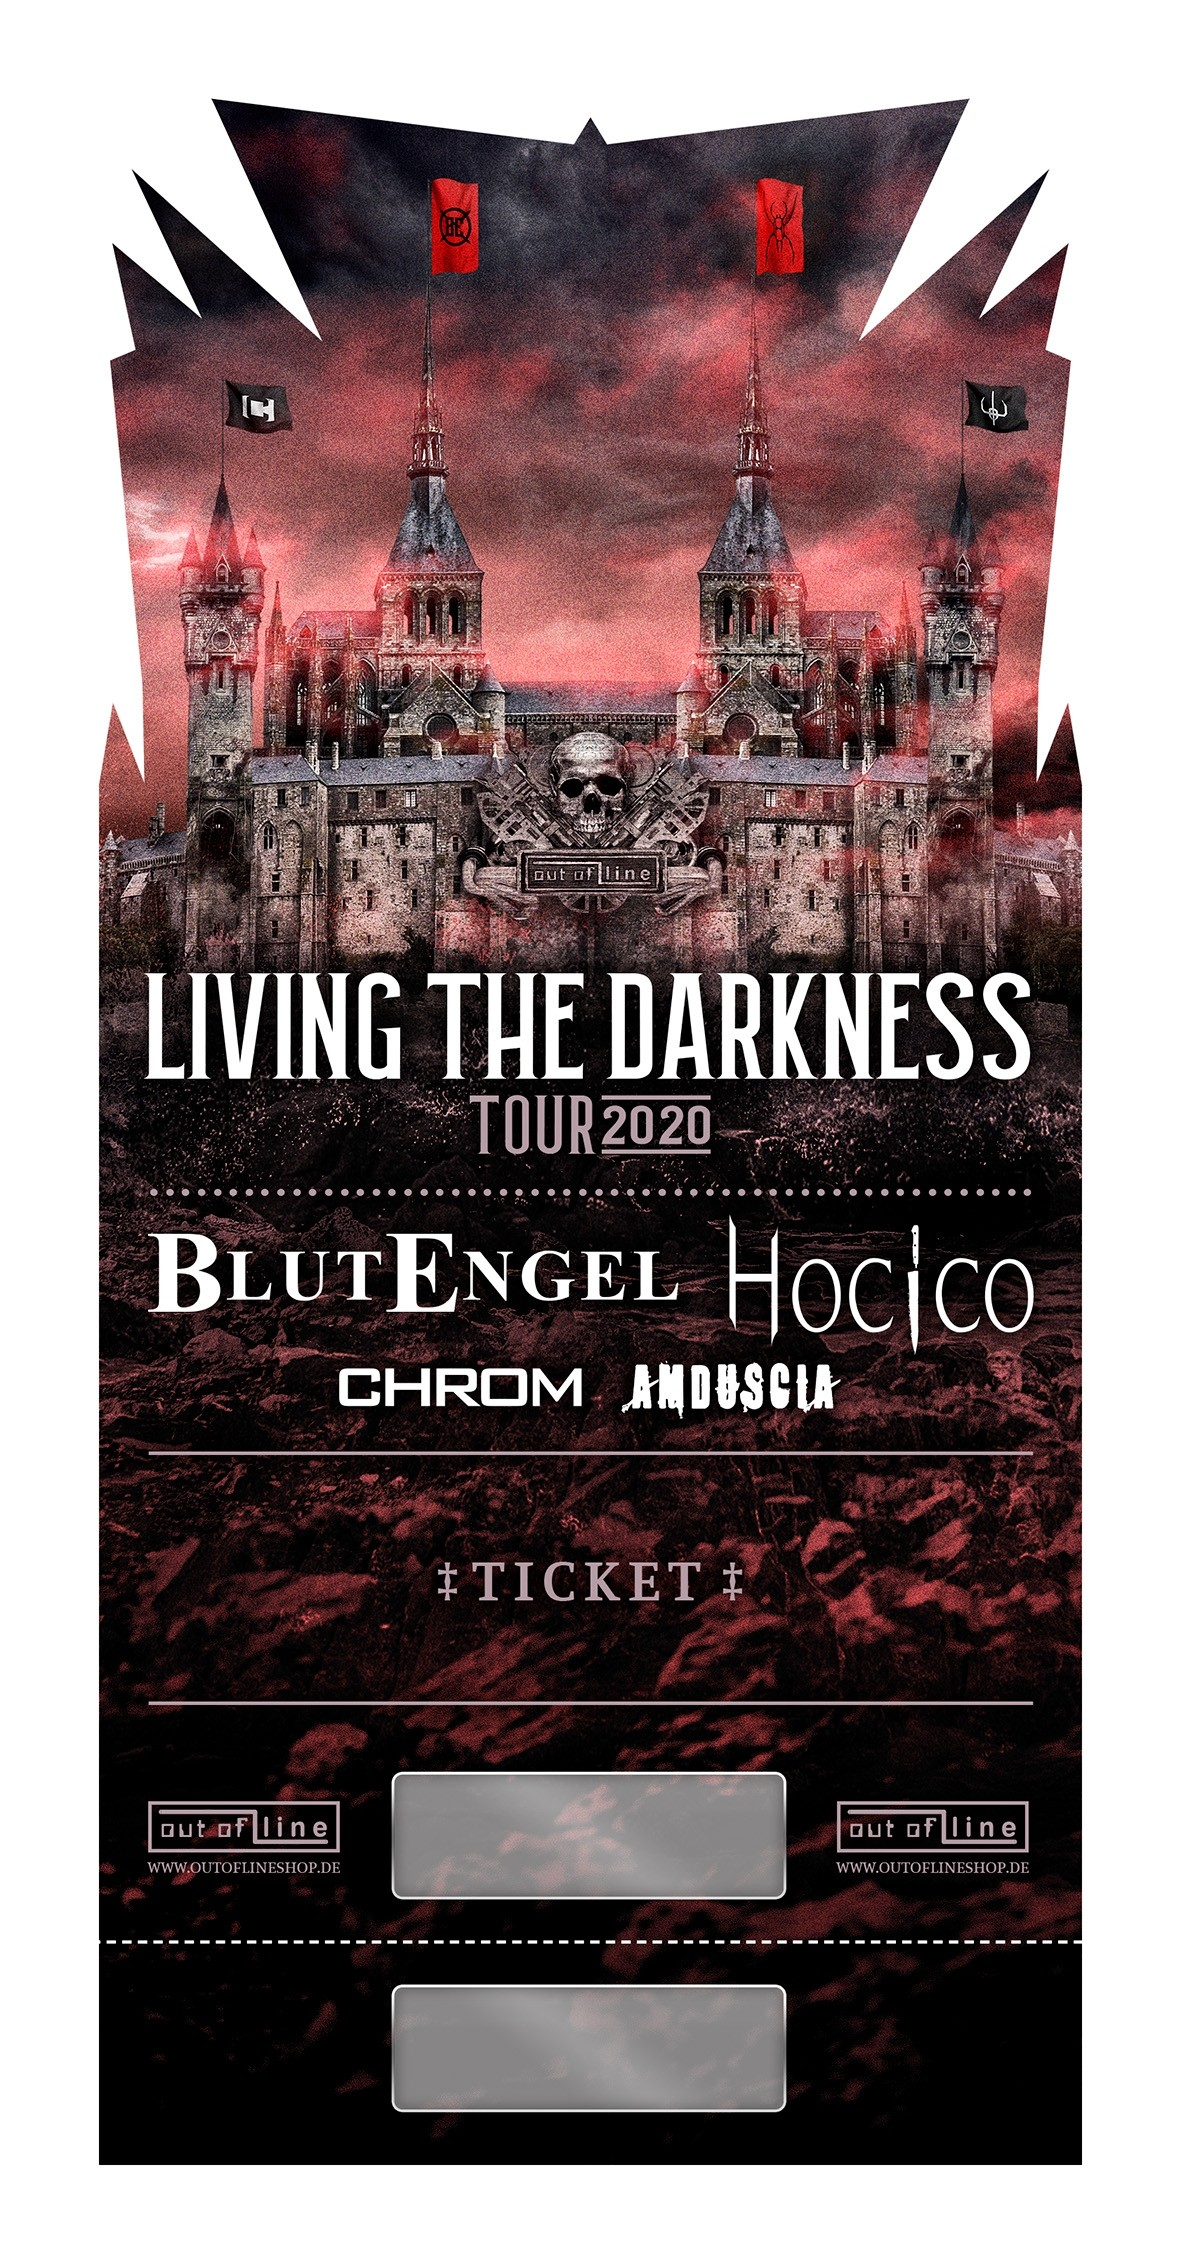 LIVING THE DARKNESS Tour - 22.04.2022 - LKA/Stuttgart - Ticket